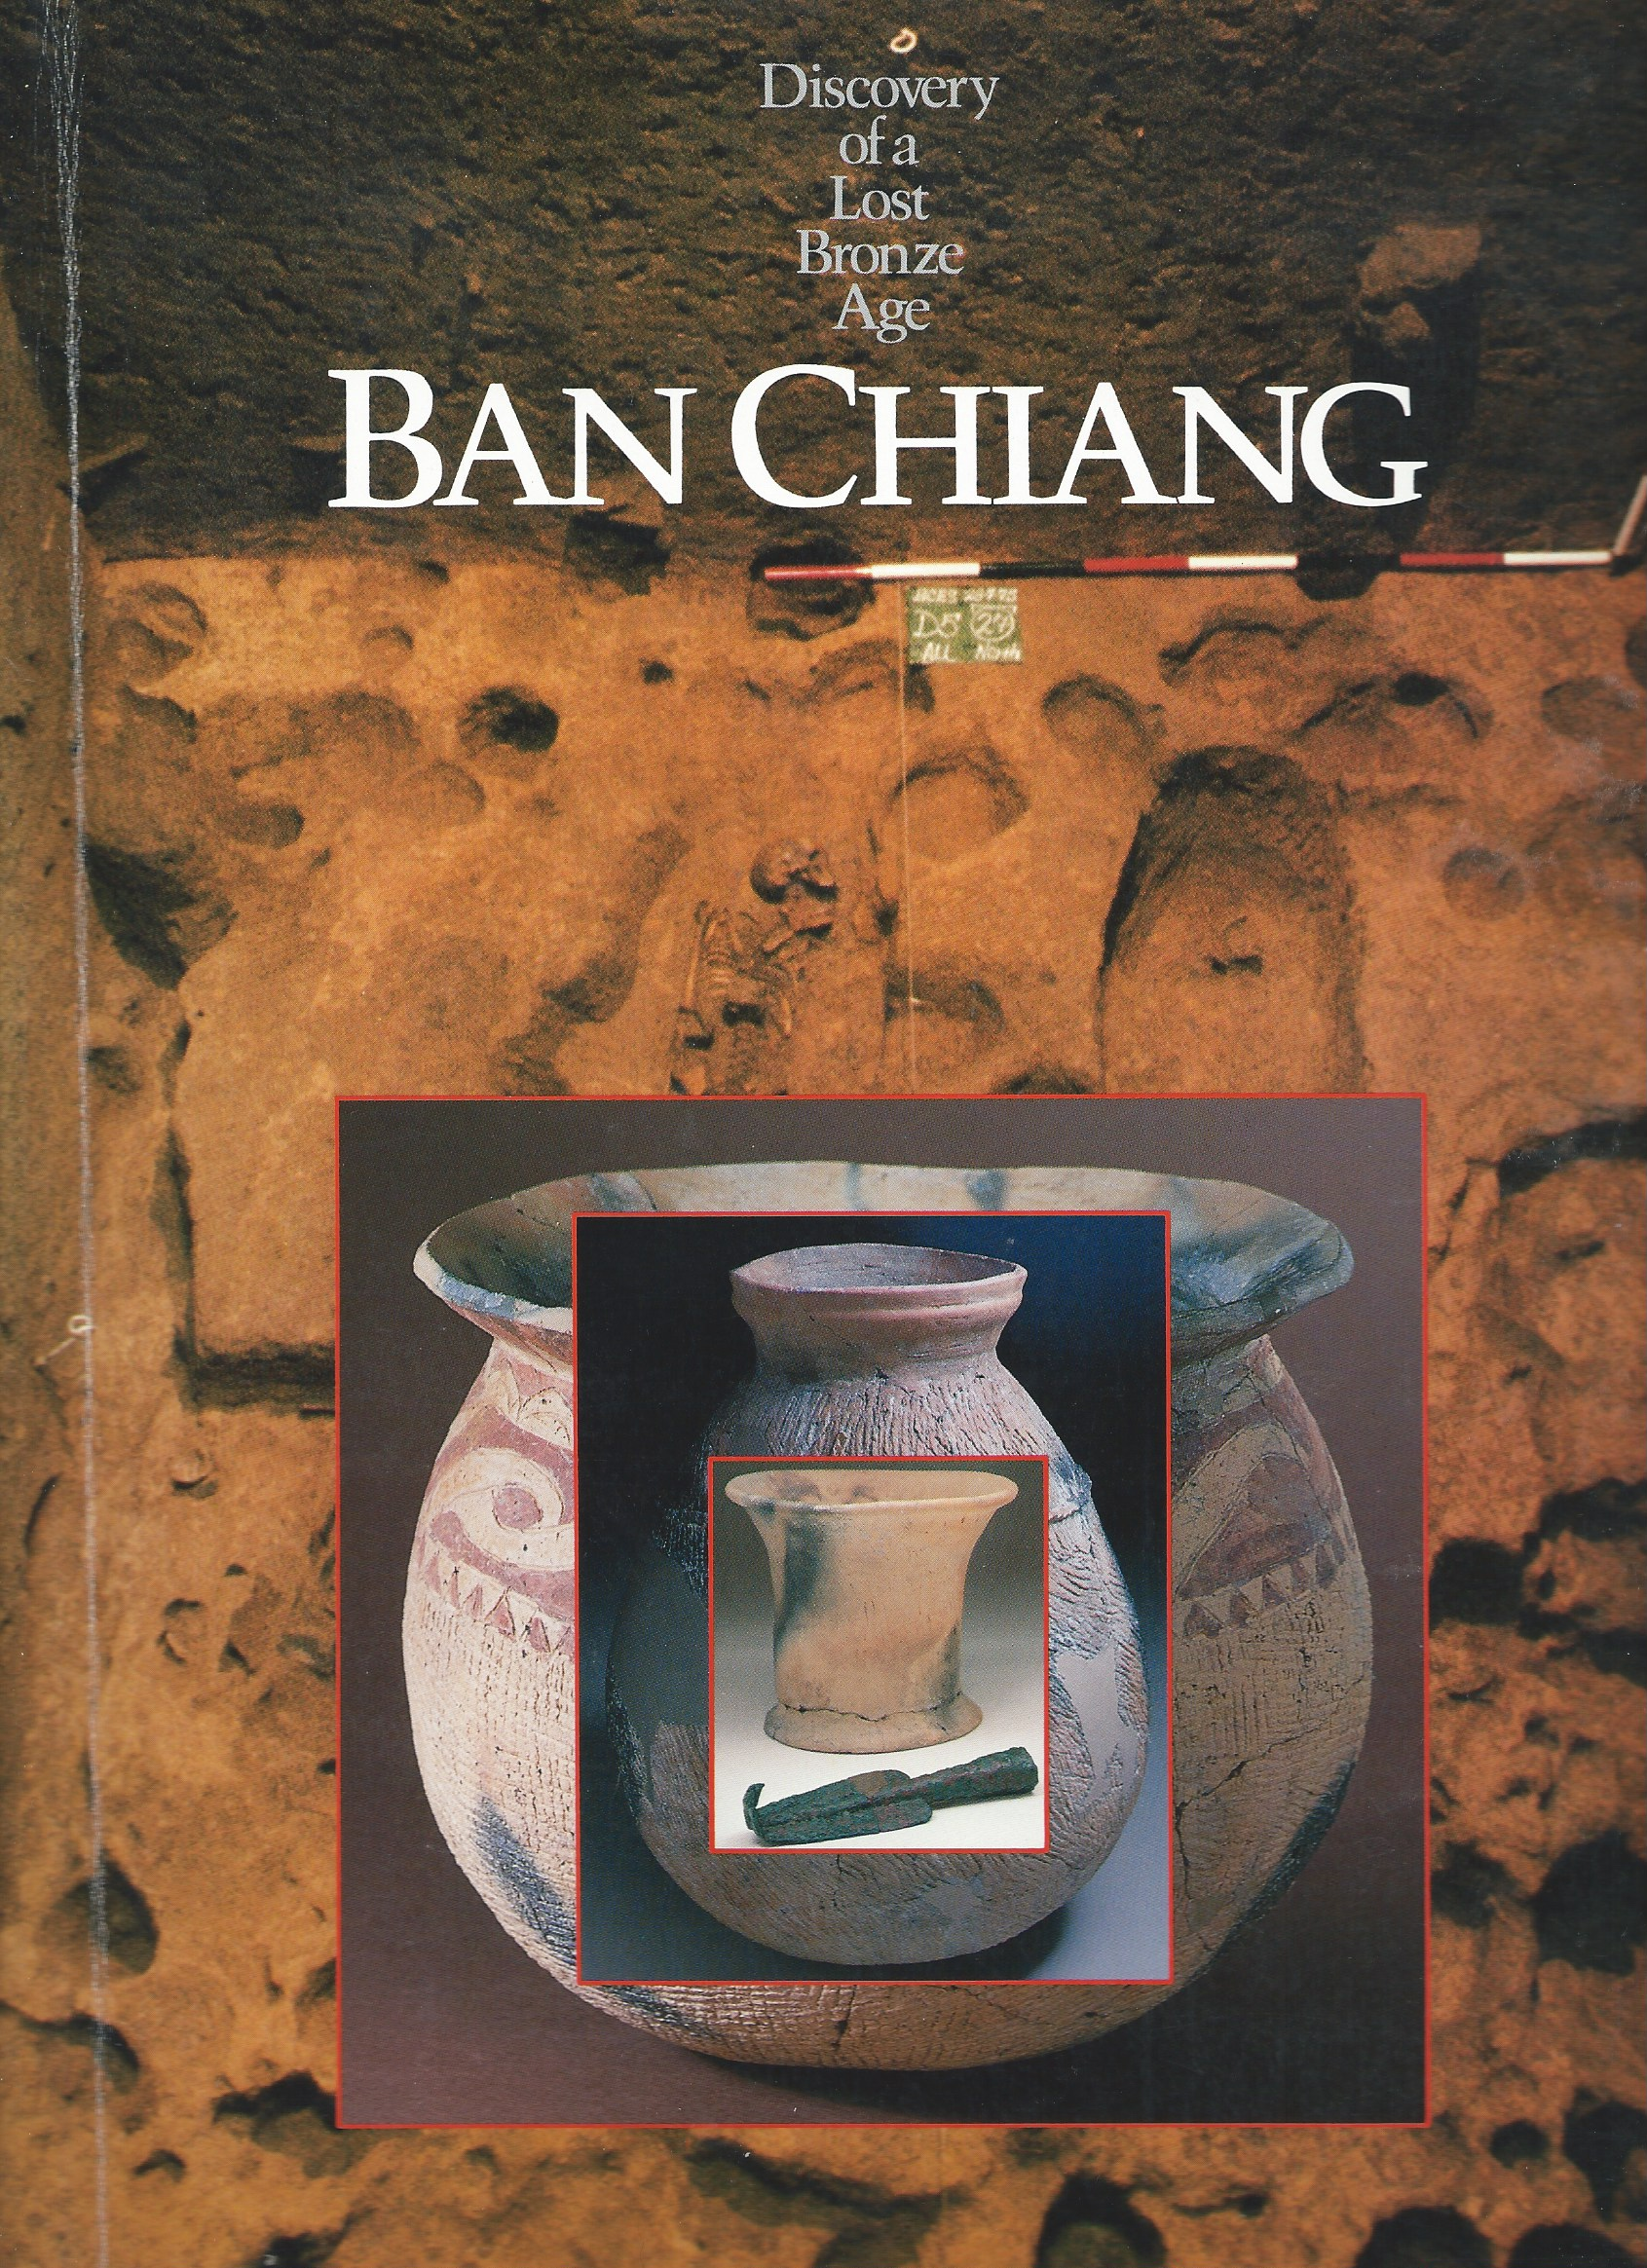 Image for DISCOVERY OF A LOST BRONZE AGE BAN CHIANG